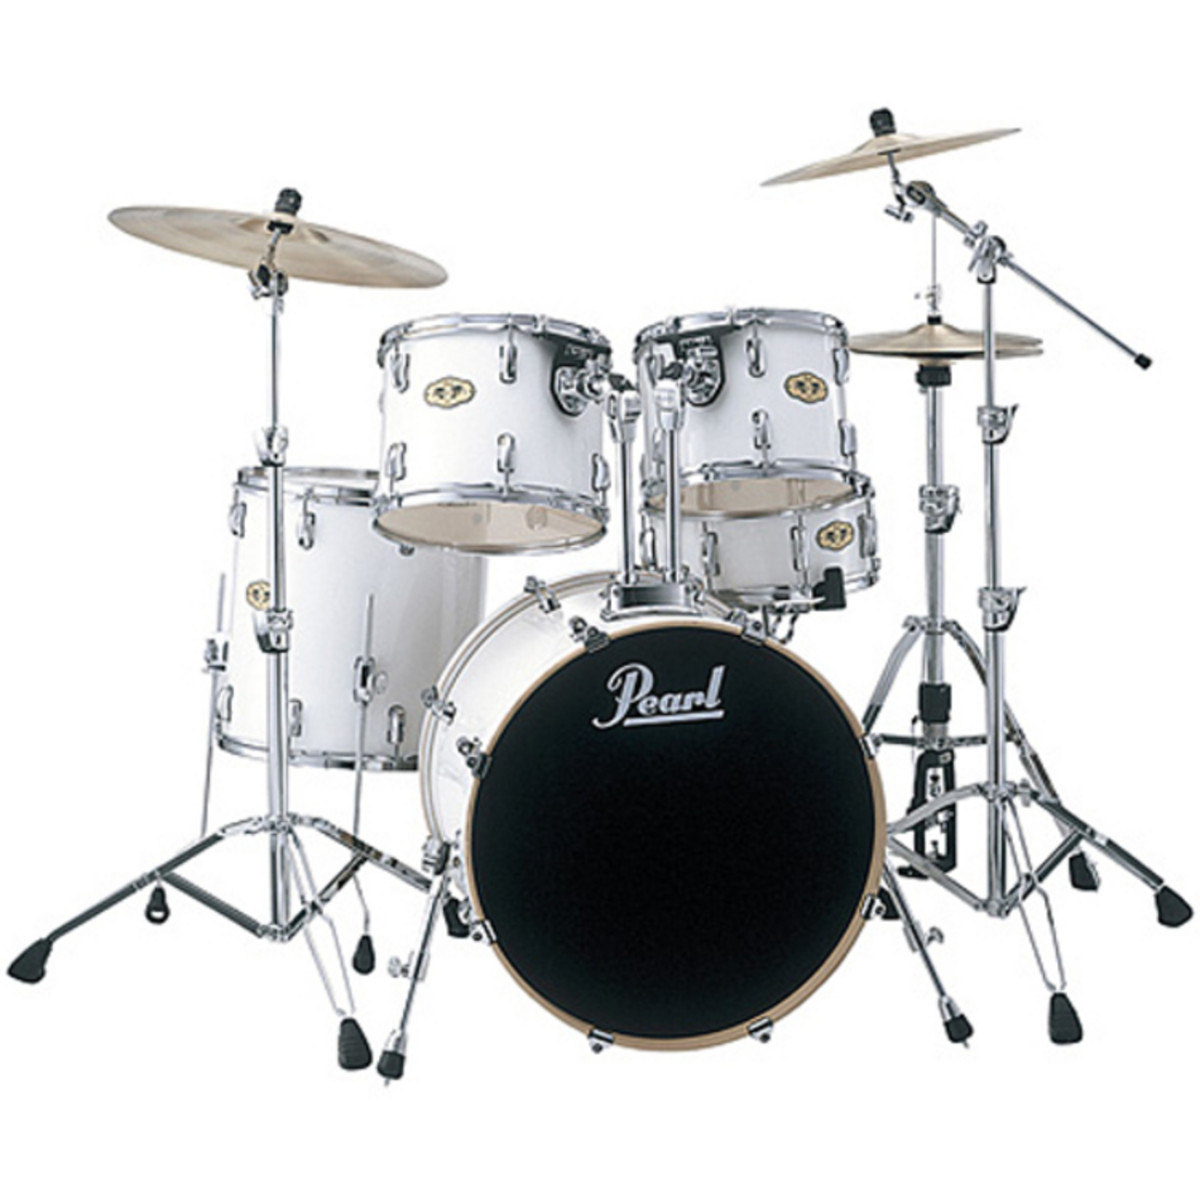 disc pearl vision vmx maple drum kit ex demo white at gear4music. Black Bedroom Furniture Sets. Home Design Ideas